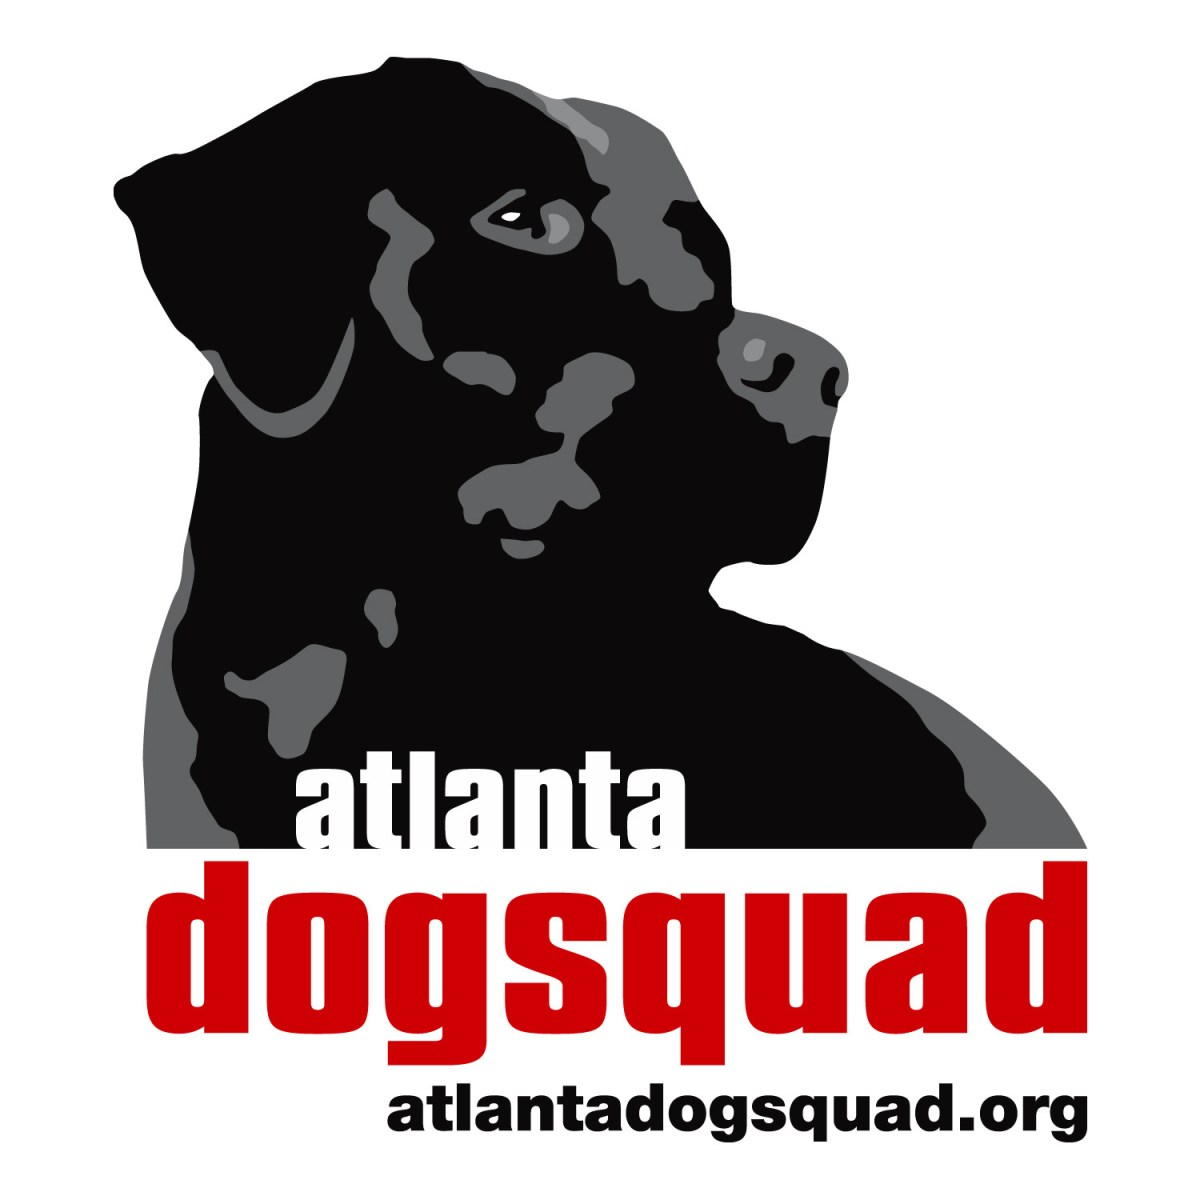 Atlanta Dog Squad logo